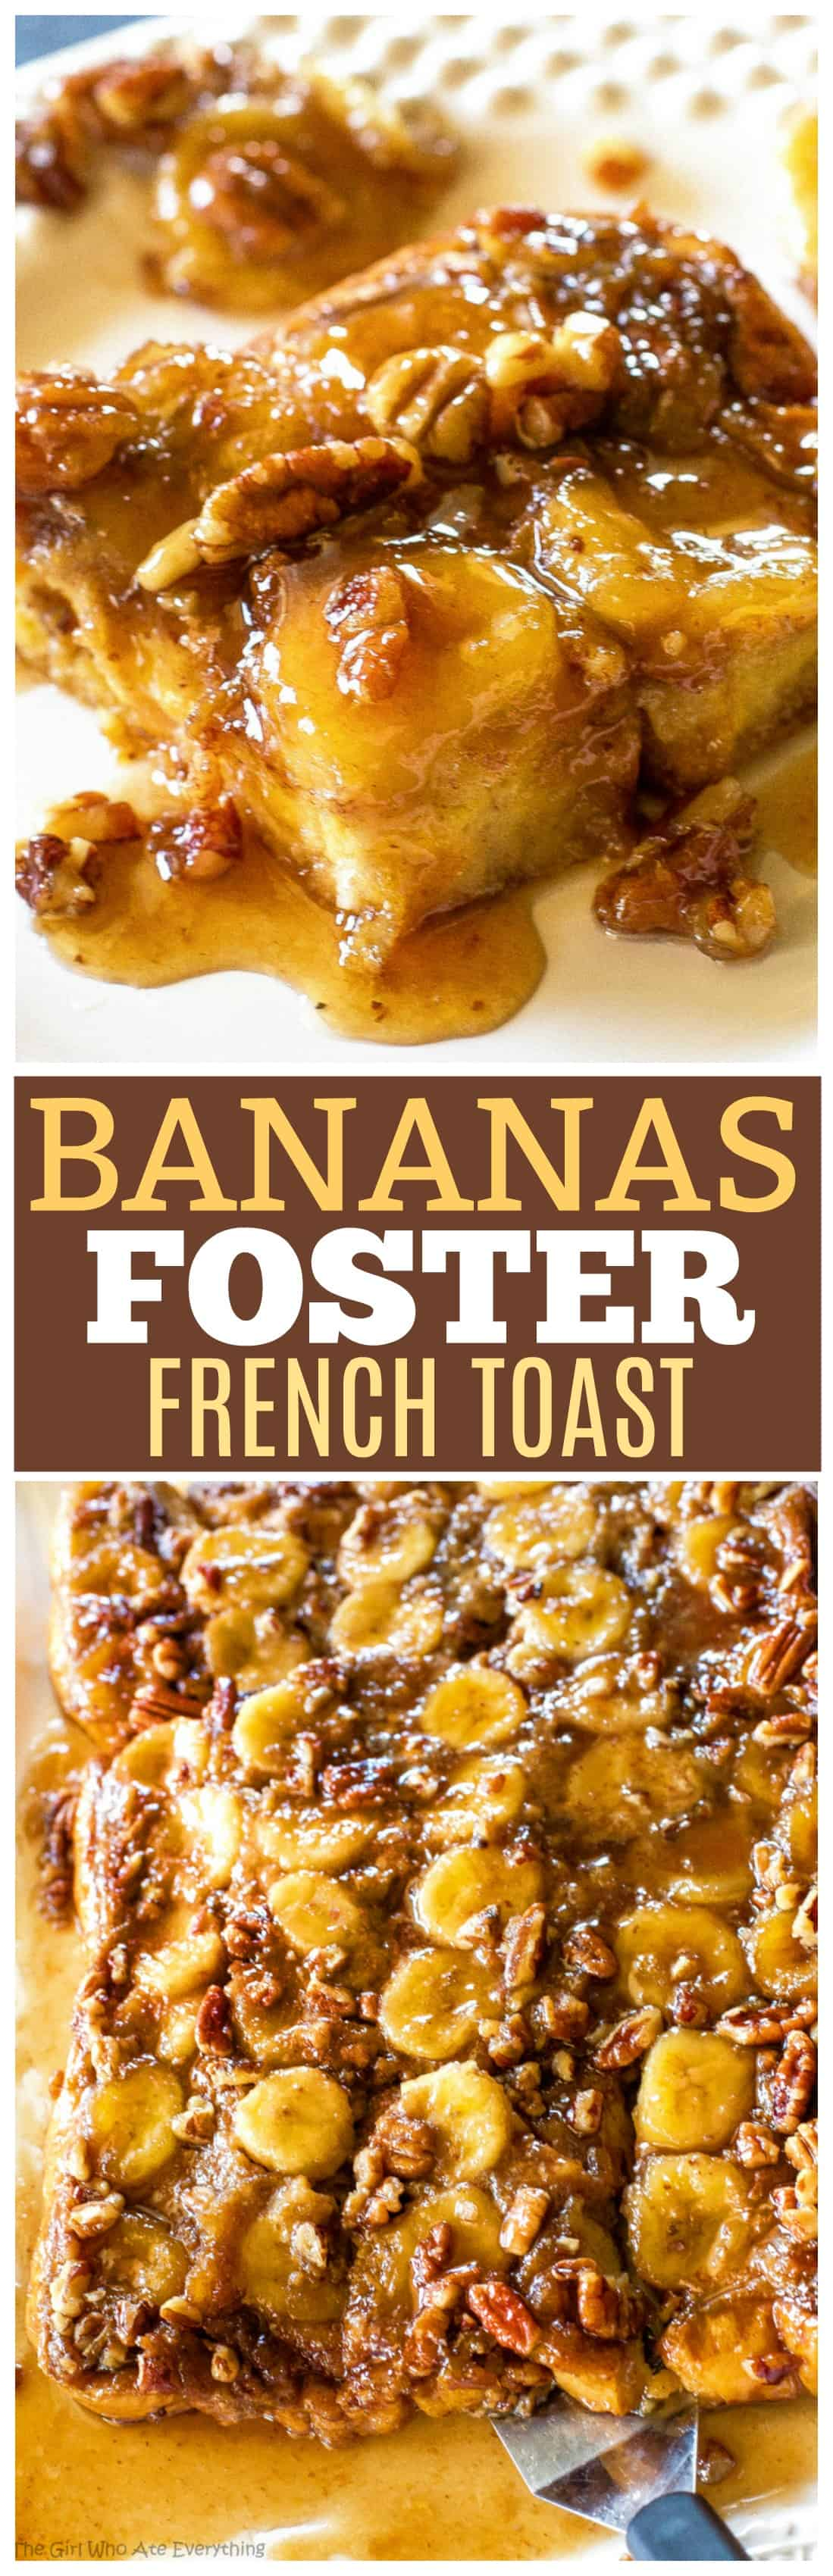 Baked Bananas Foster French Toast - brown sugar, bananas, and pecans in this decadent for breakfast! This recipe can be made a day ahead. #bananas #foster #french #toast #breakfast #recipe